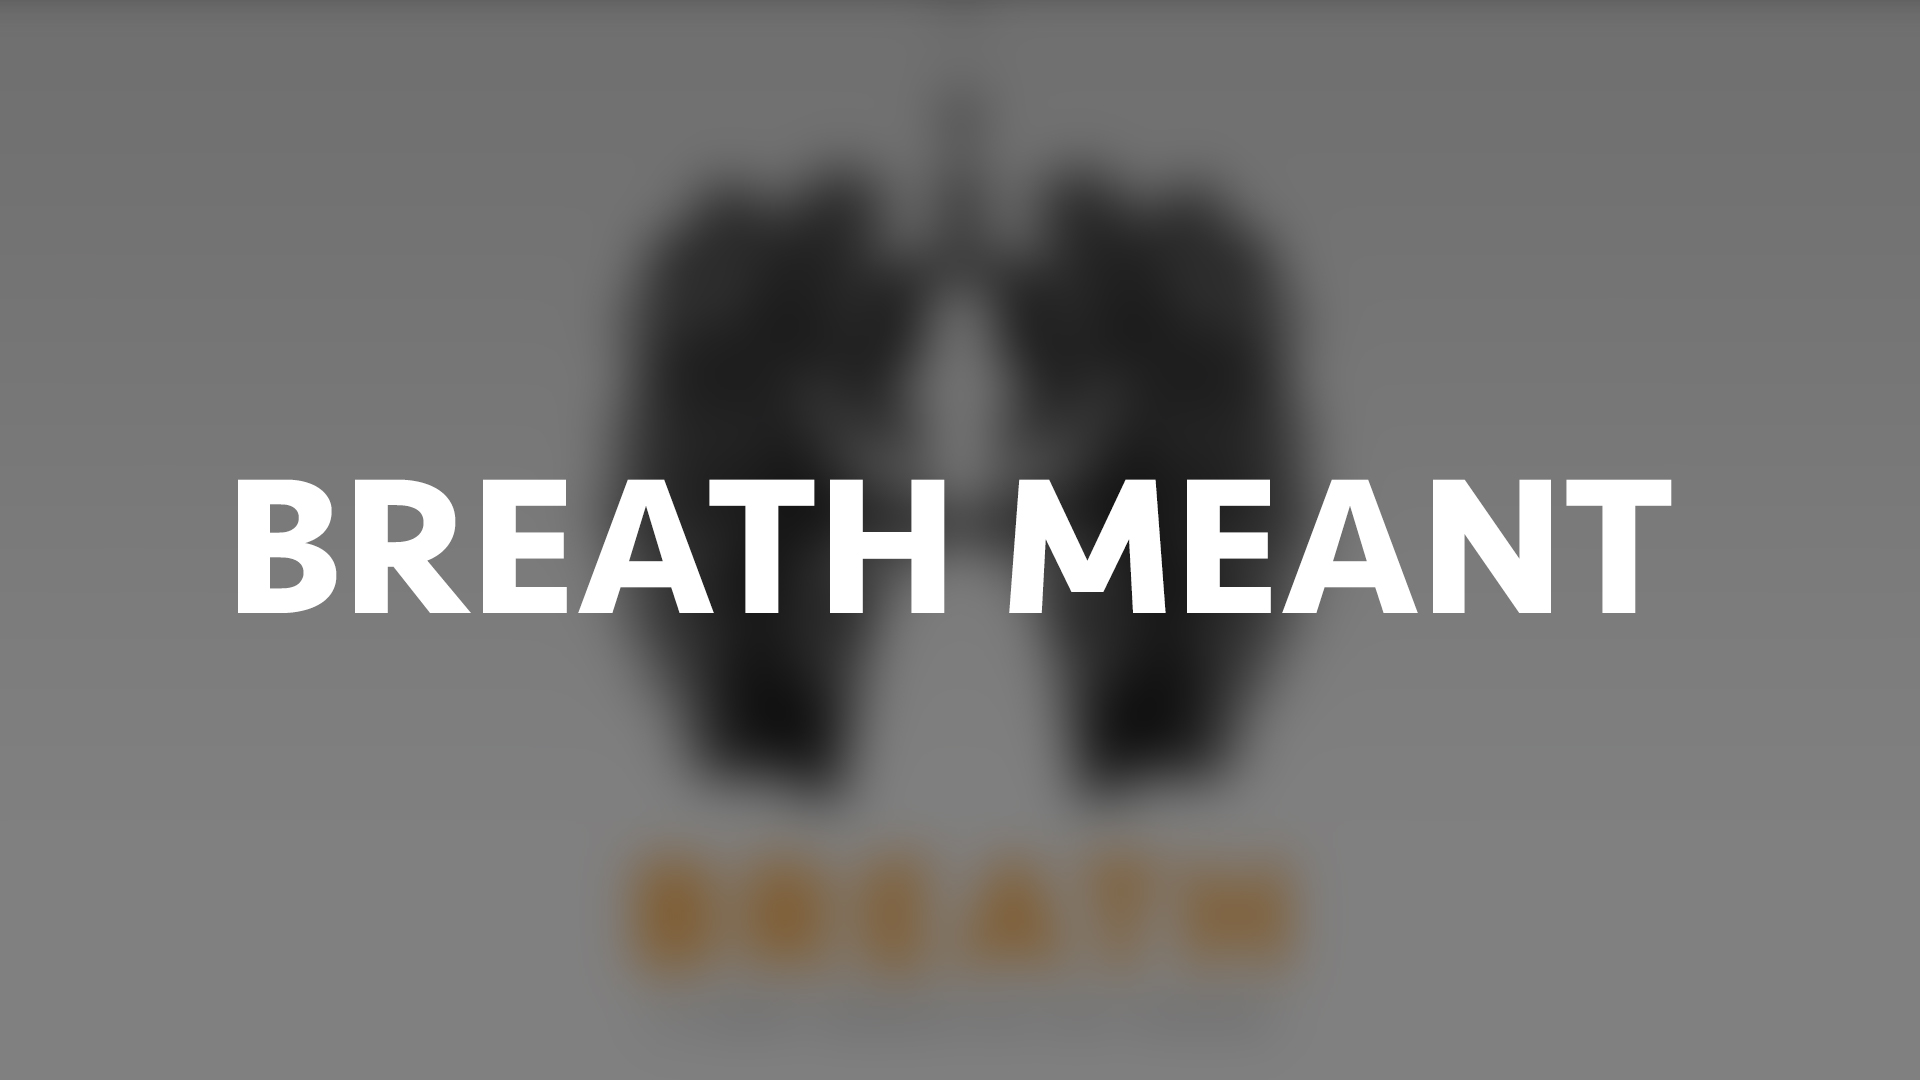 Breath Meant